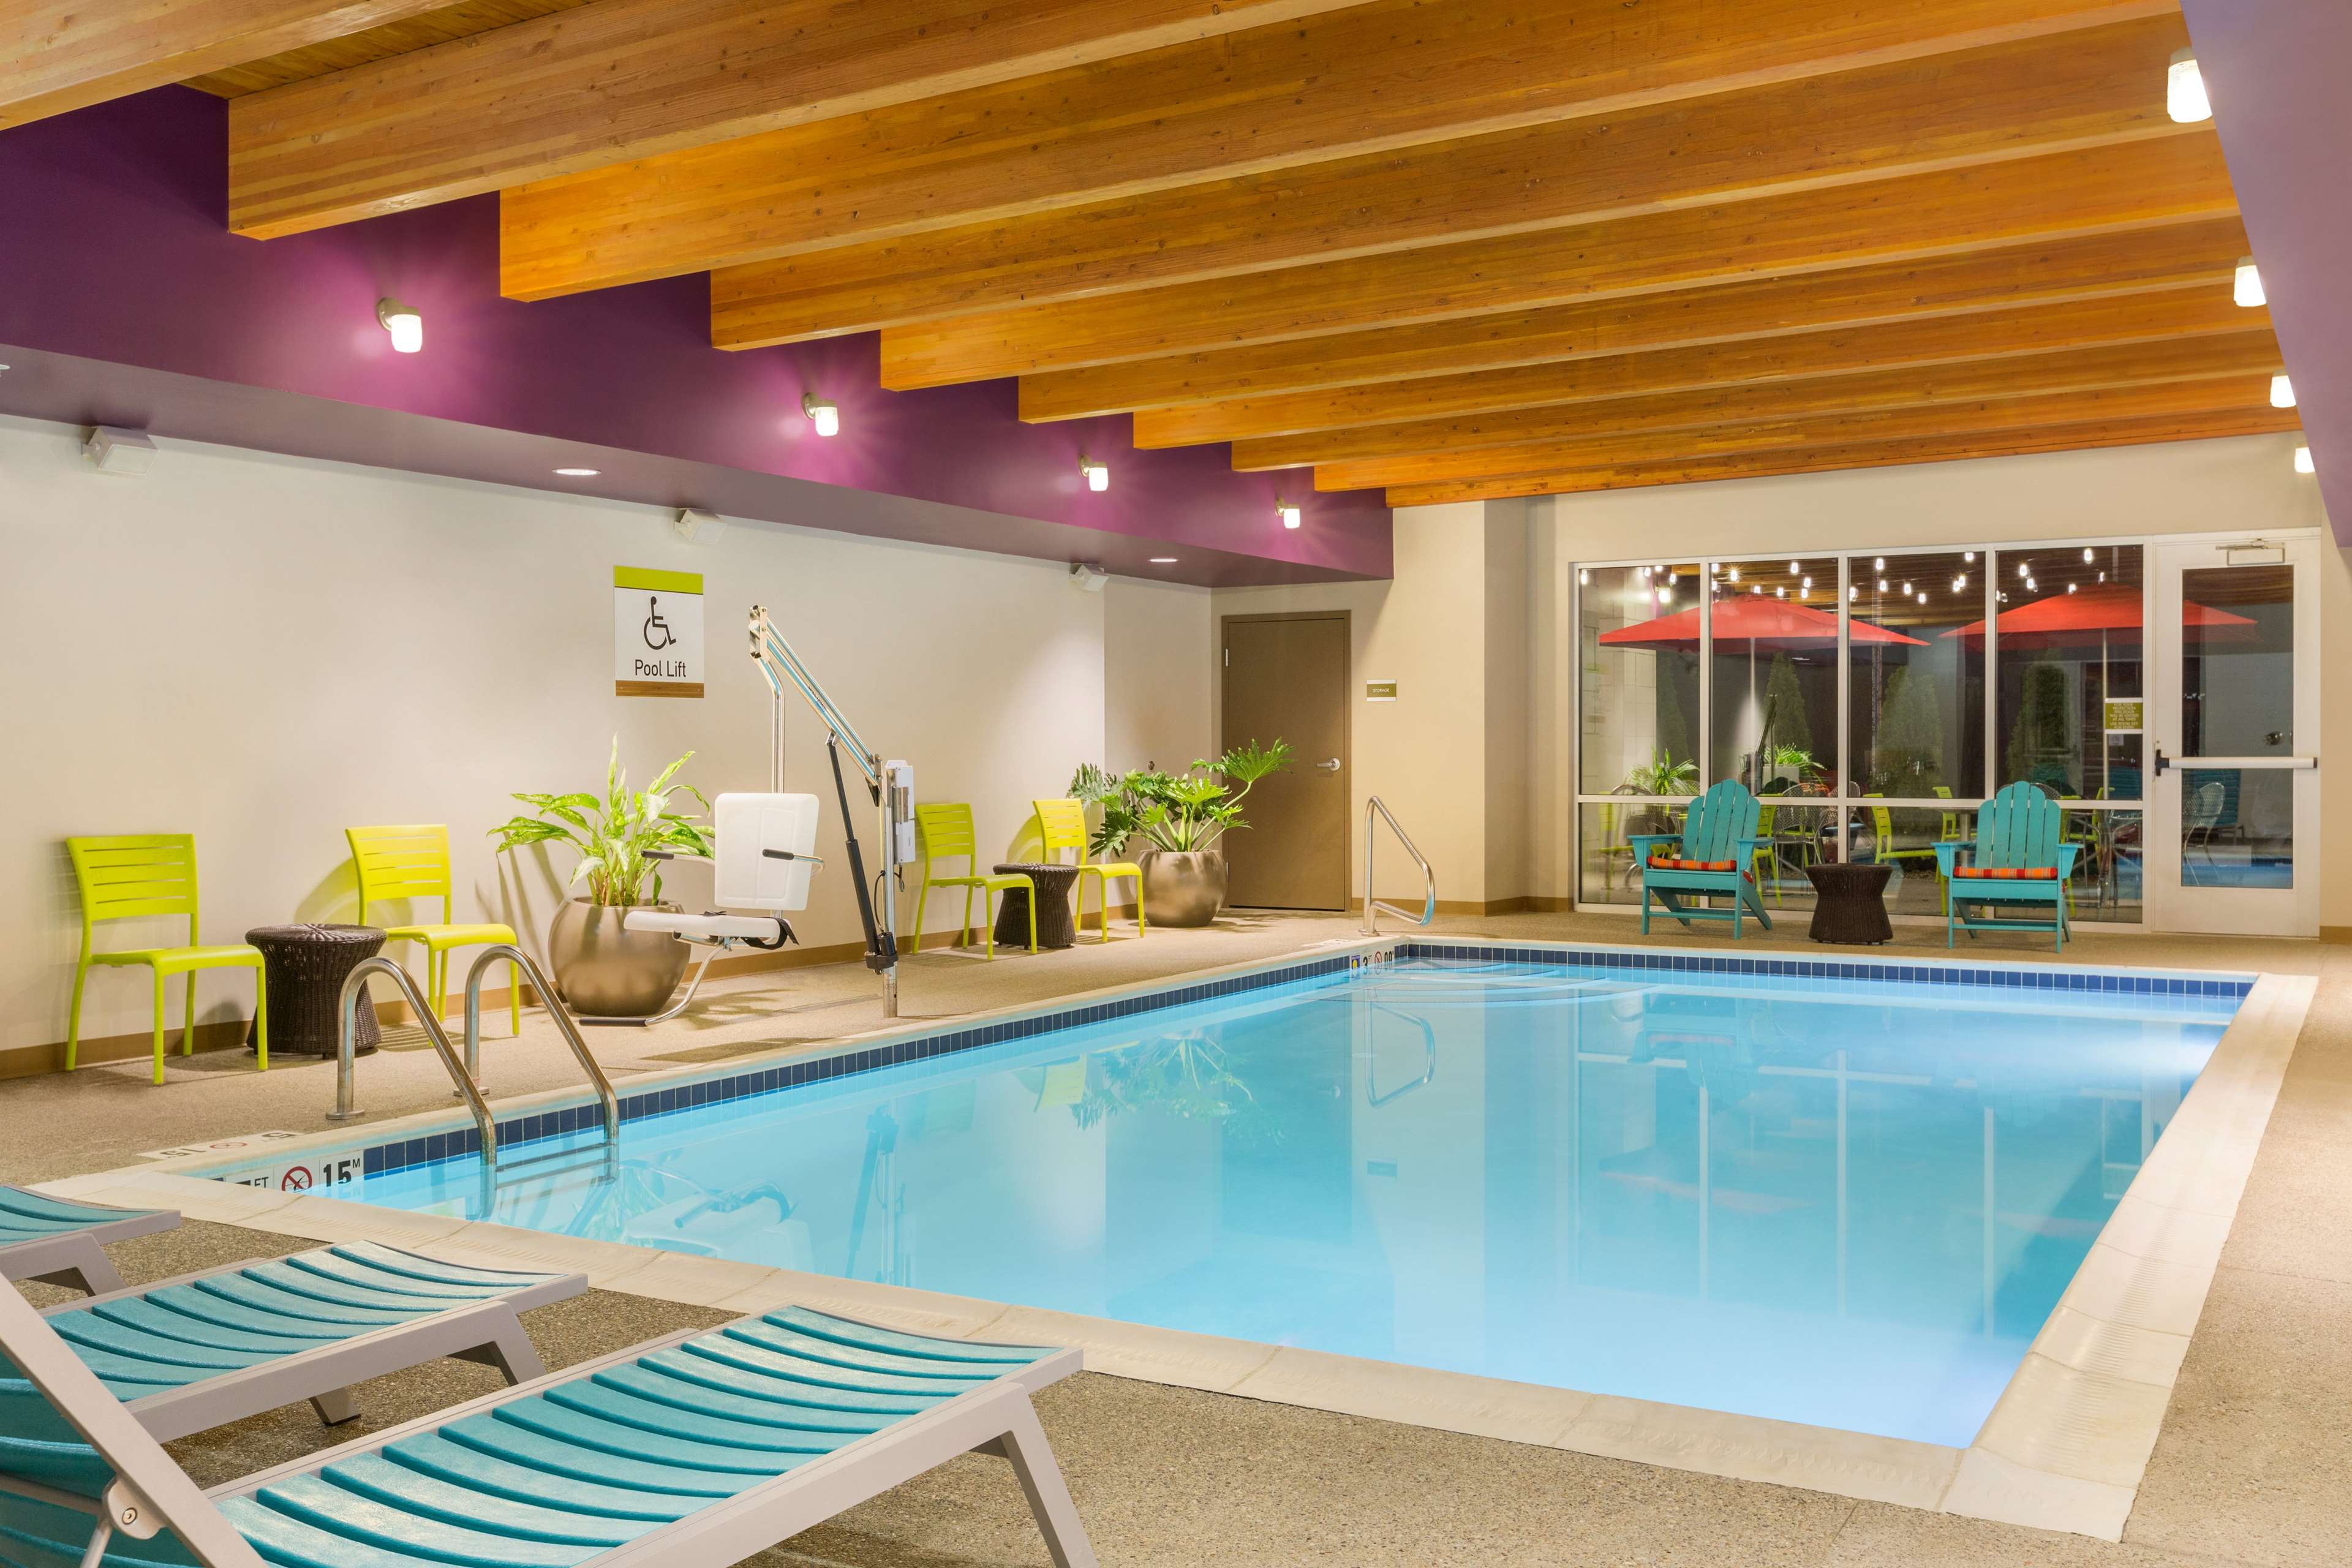 Home2 Suites By Hilton Youngstown West - Austintown image 7